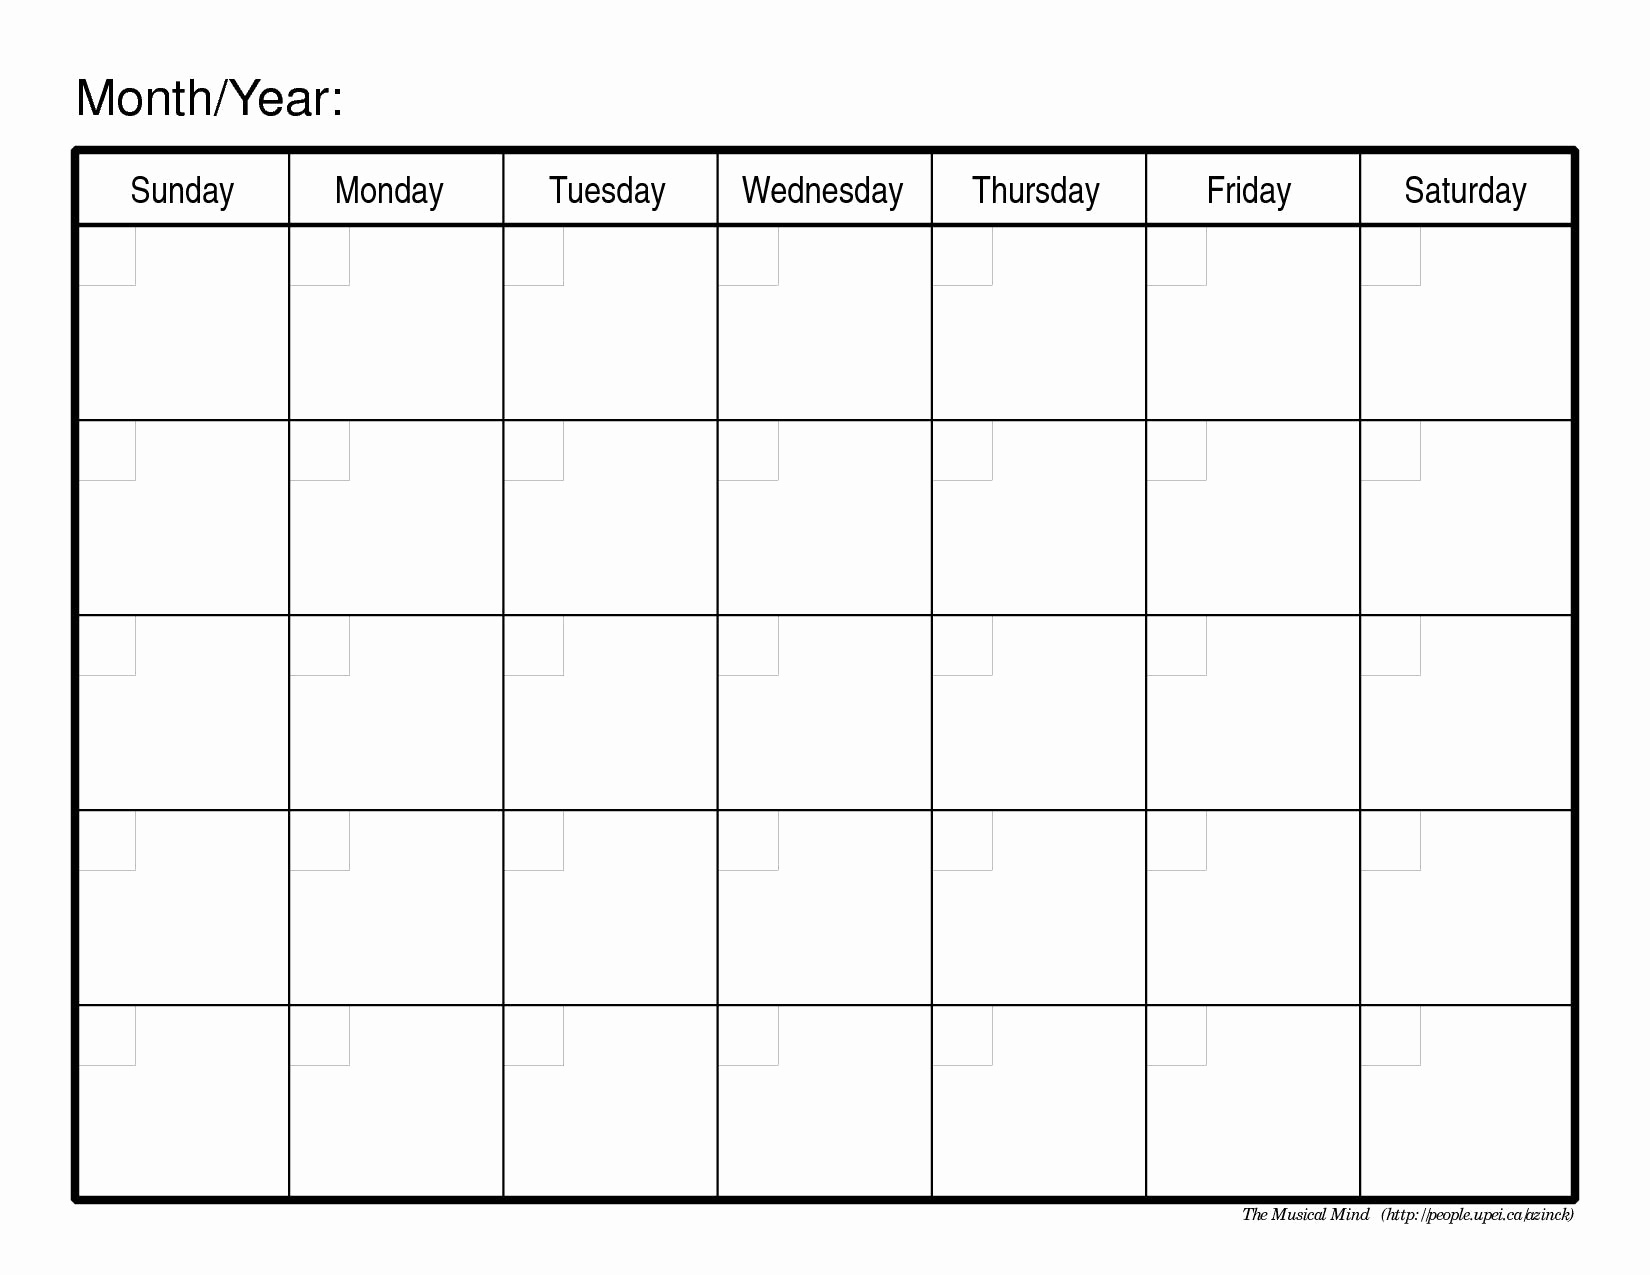 Free Calendars To Print Without Downloading | Template Calendar intended for Free Calendars To Print Without Downloading